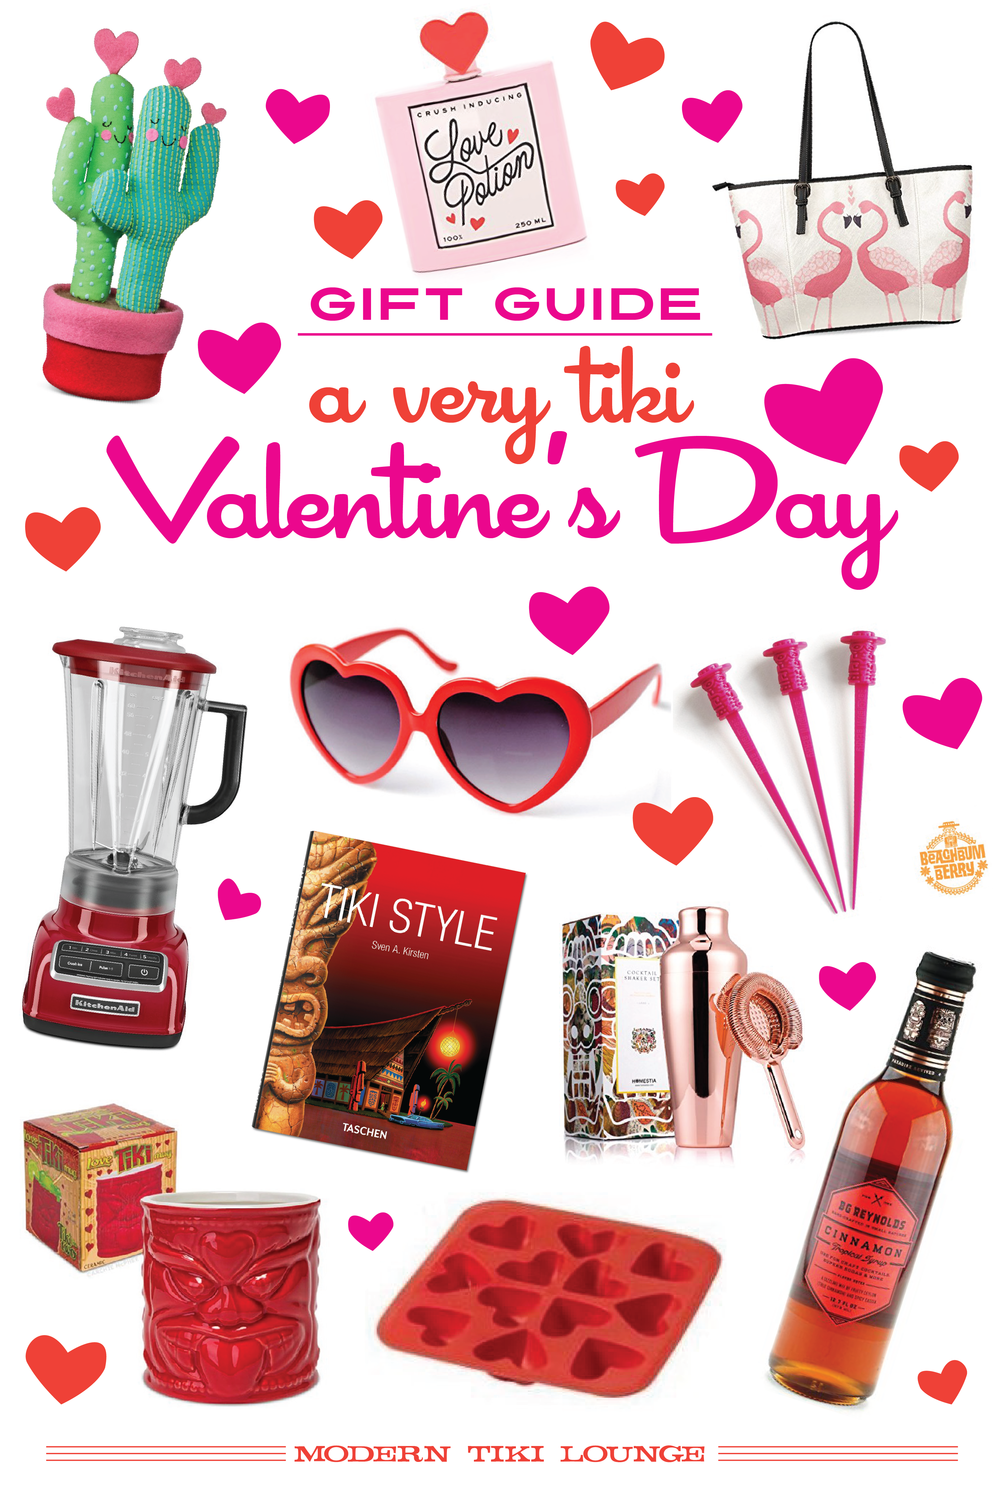 tiki-valentines-day-gift-guide.jpg